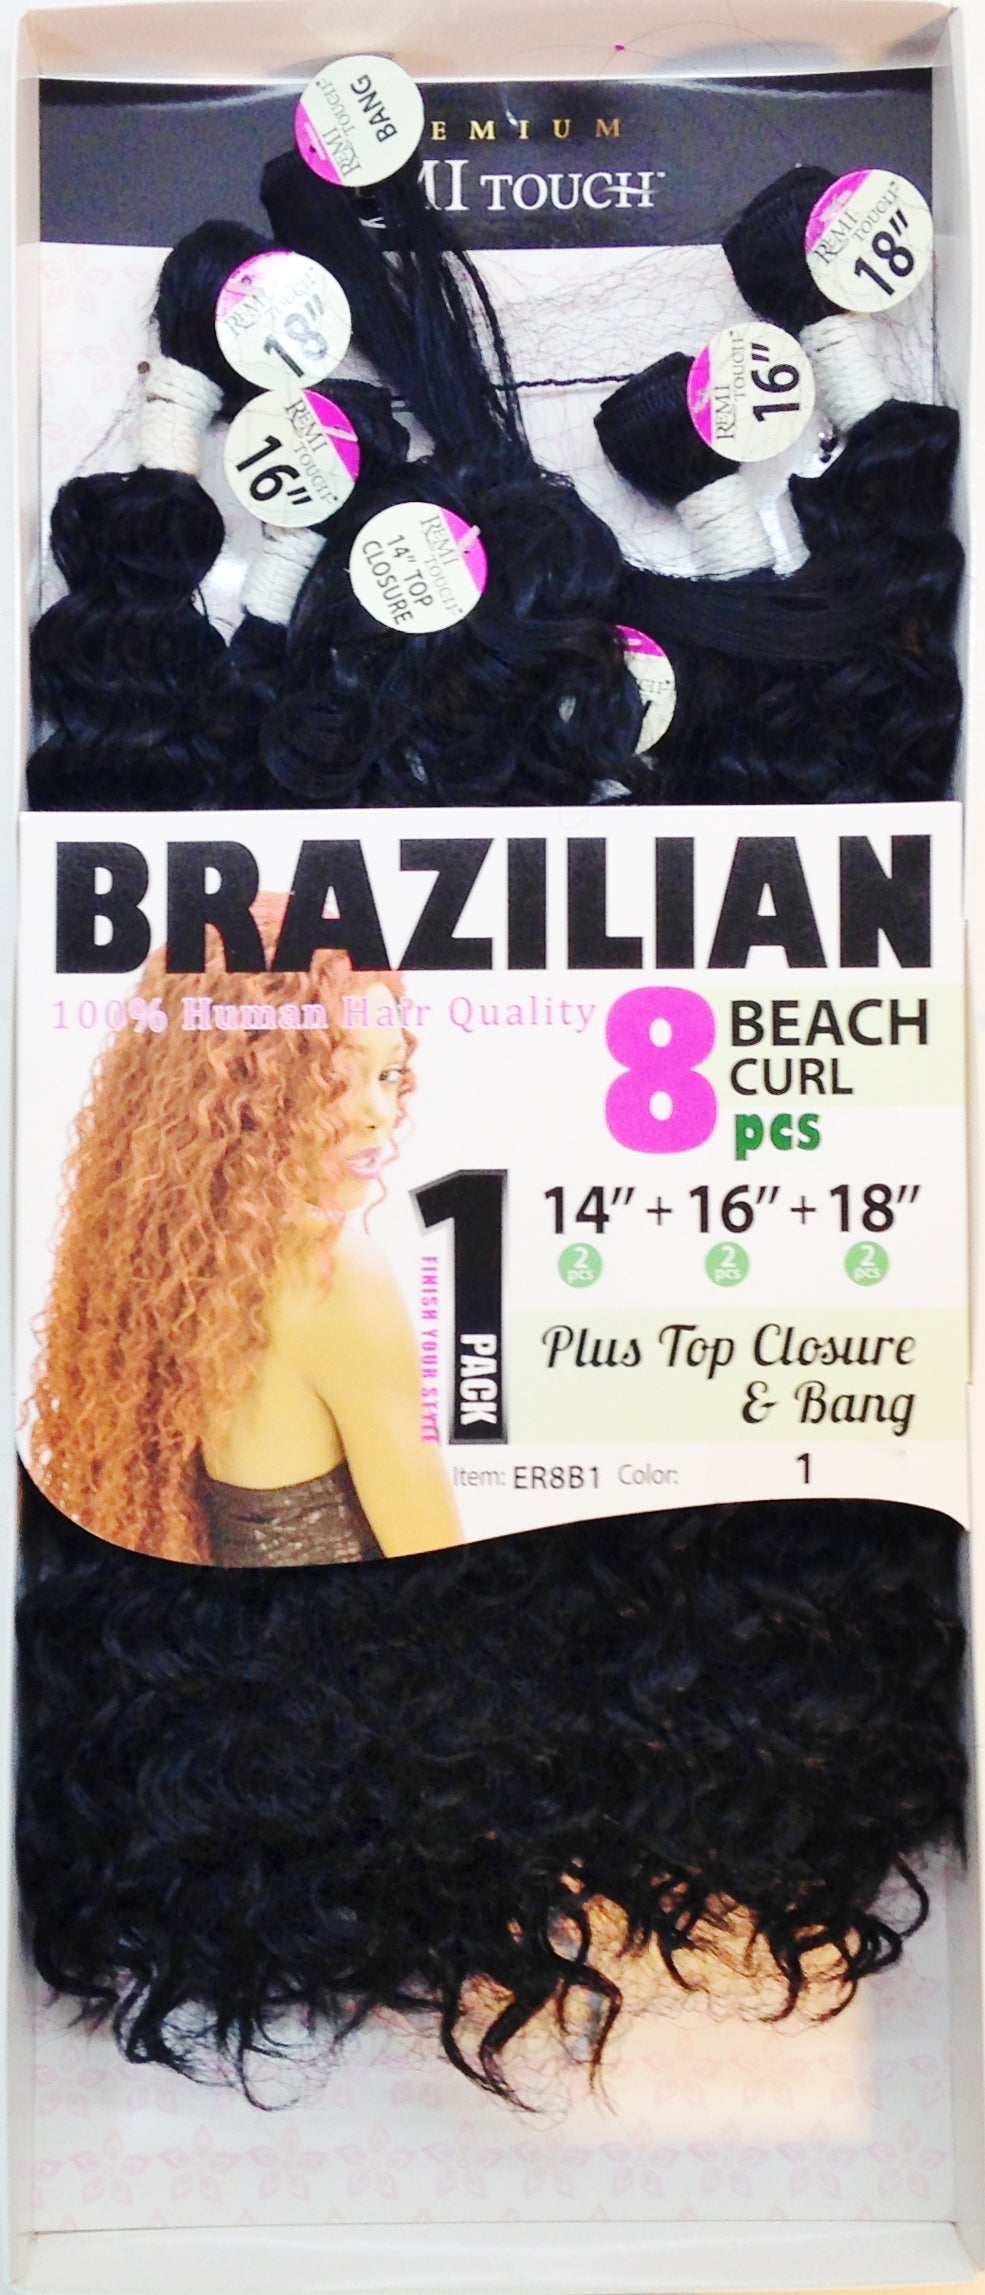 Brazilian beach curl 8pc (14